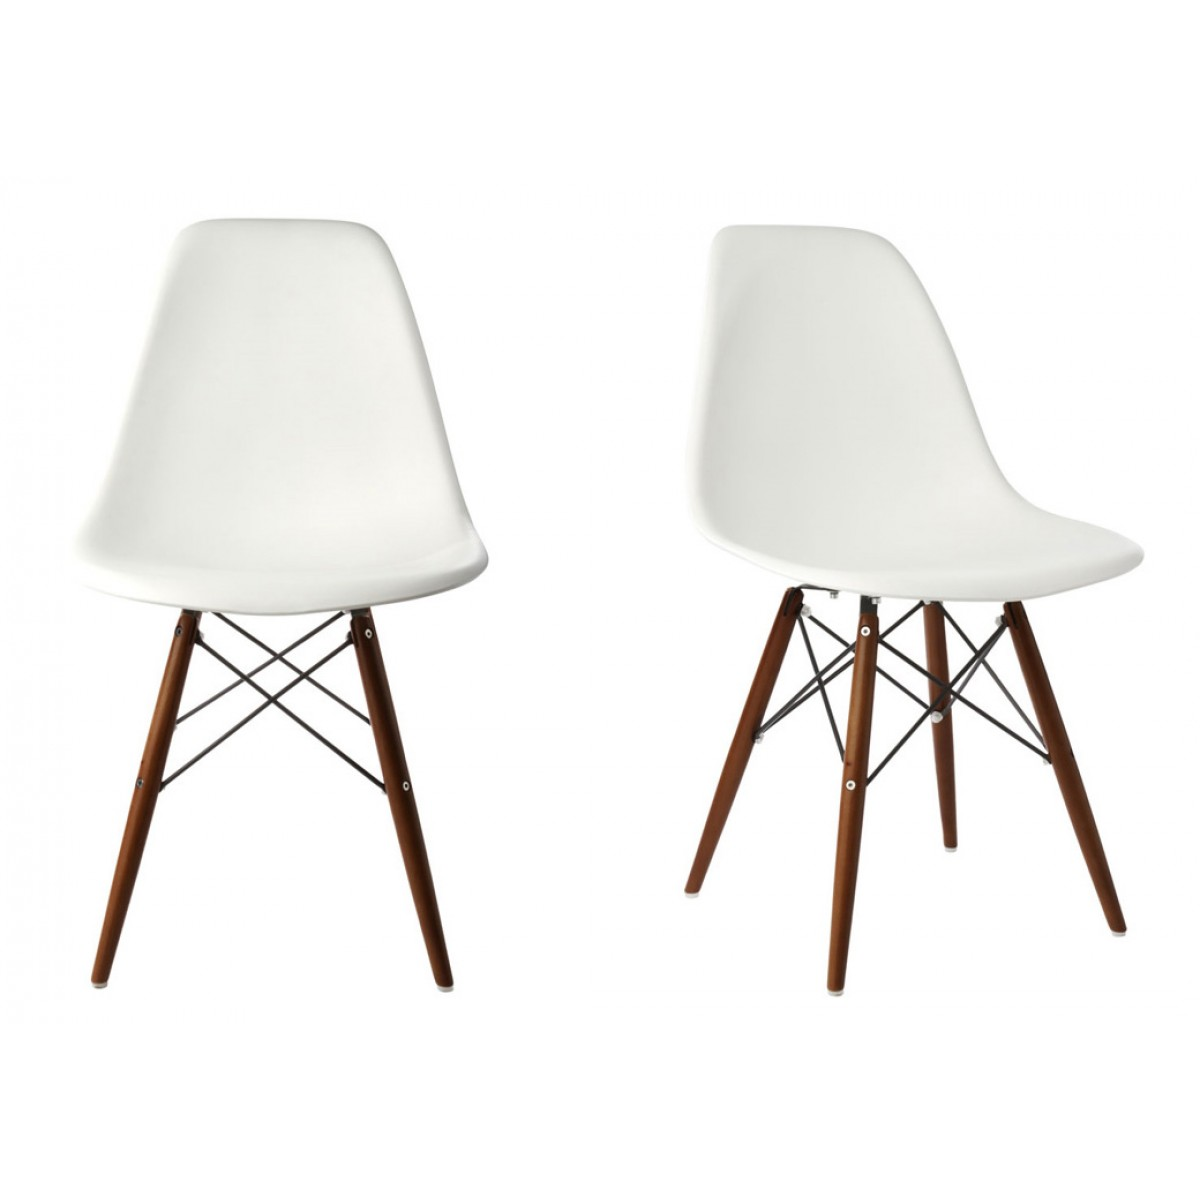 Plastic Dining Chairs Set Of 2 Eames Style Dsw Molded White Plastic Dining Shell